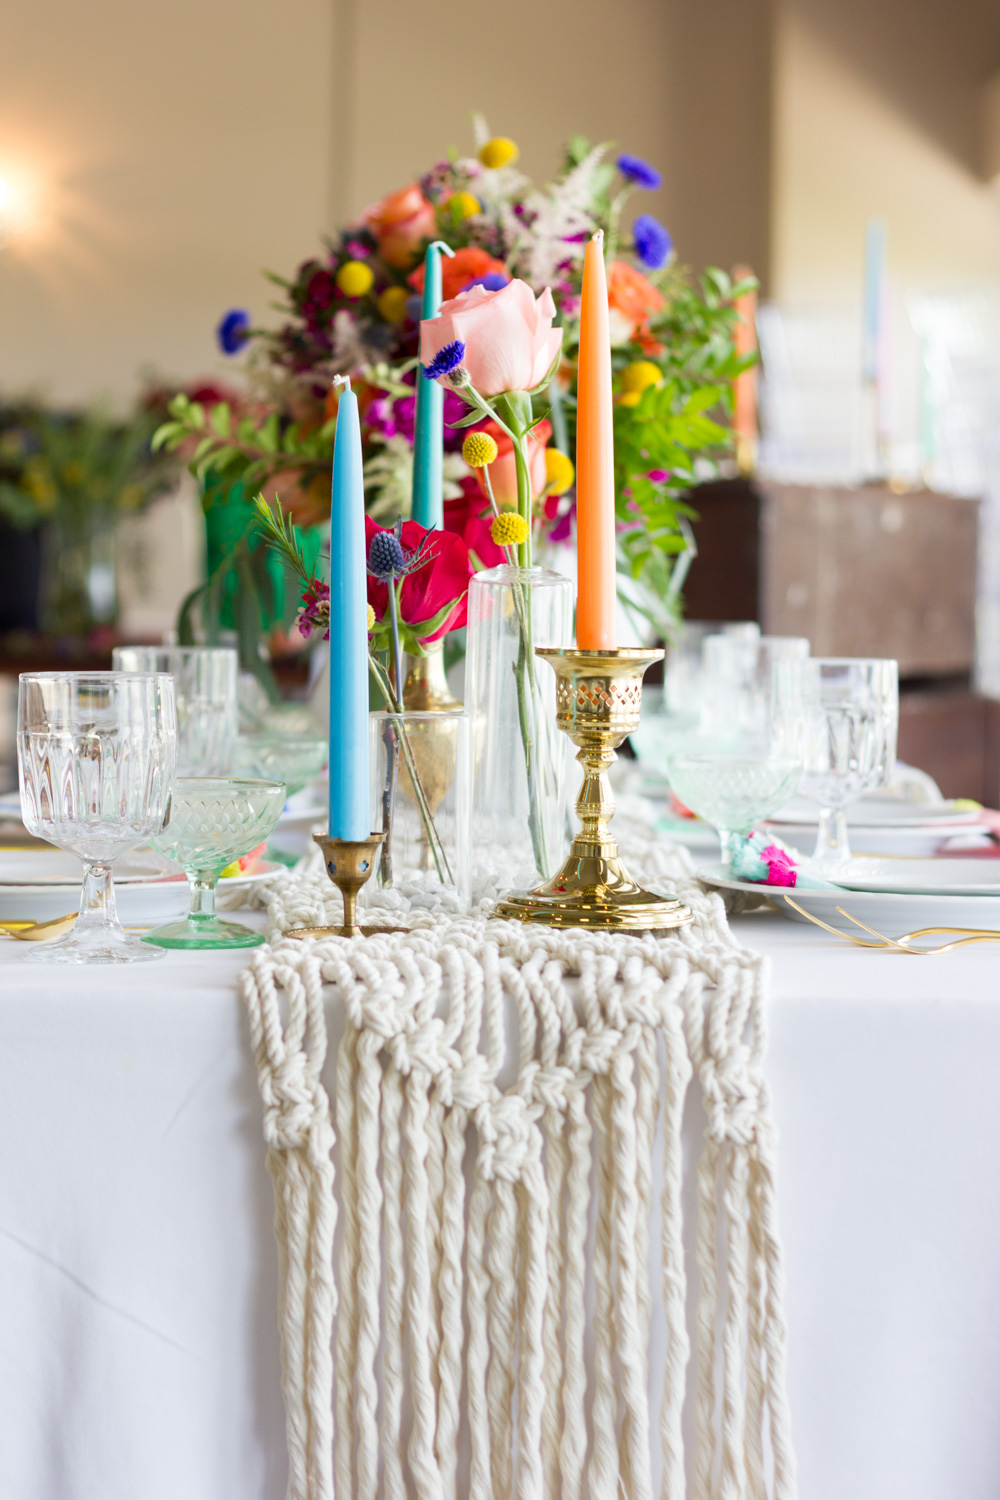 Colorful Candles, Bohemian Wedding Table Setting, Macrame Runner